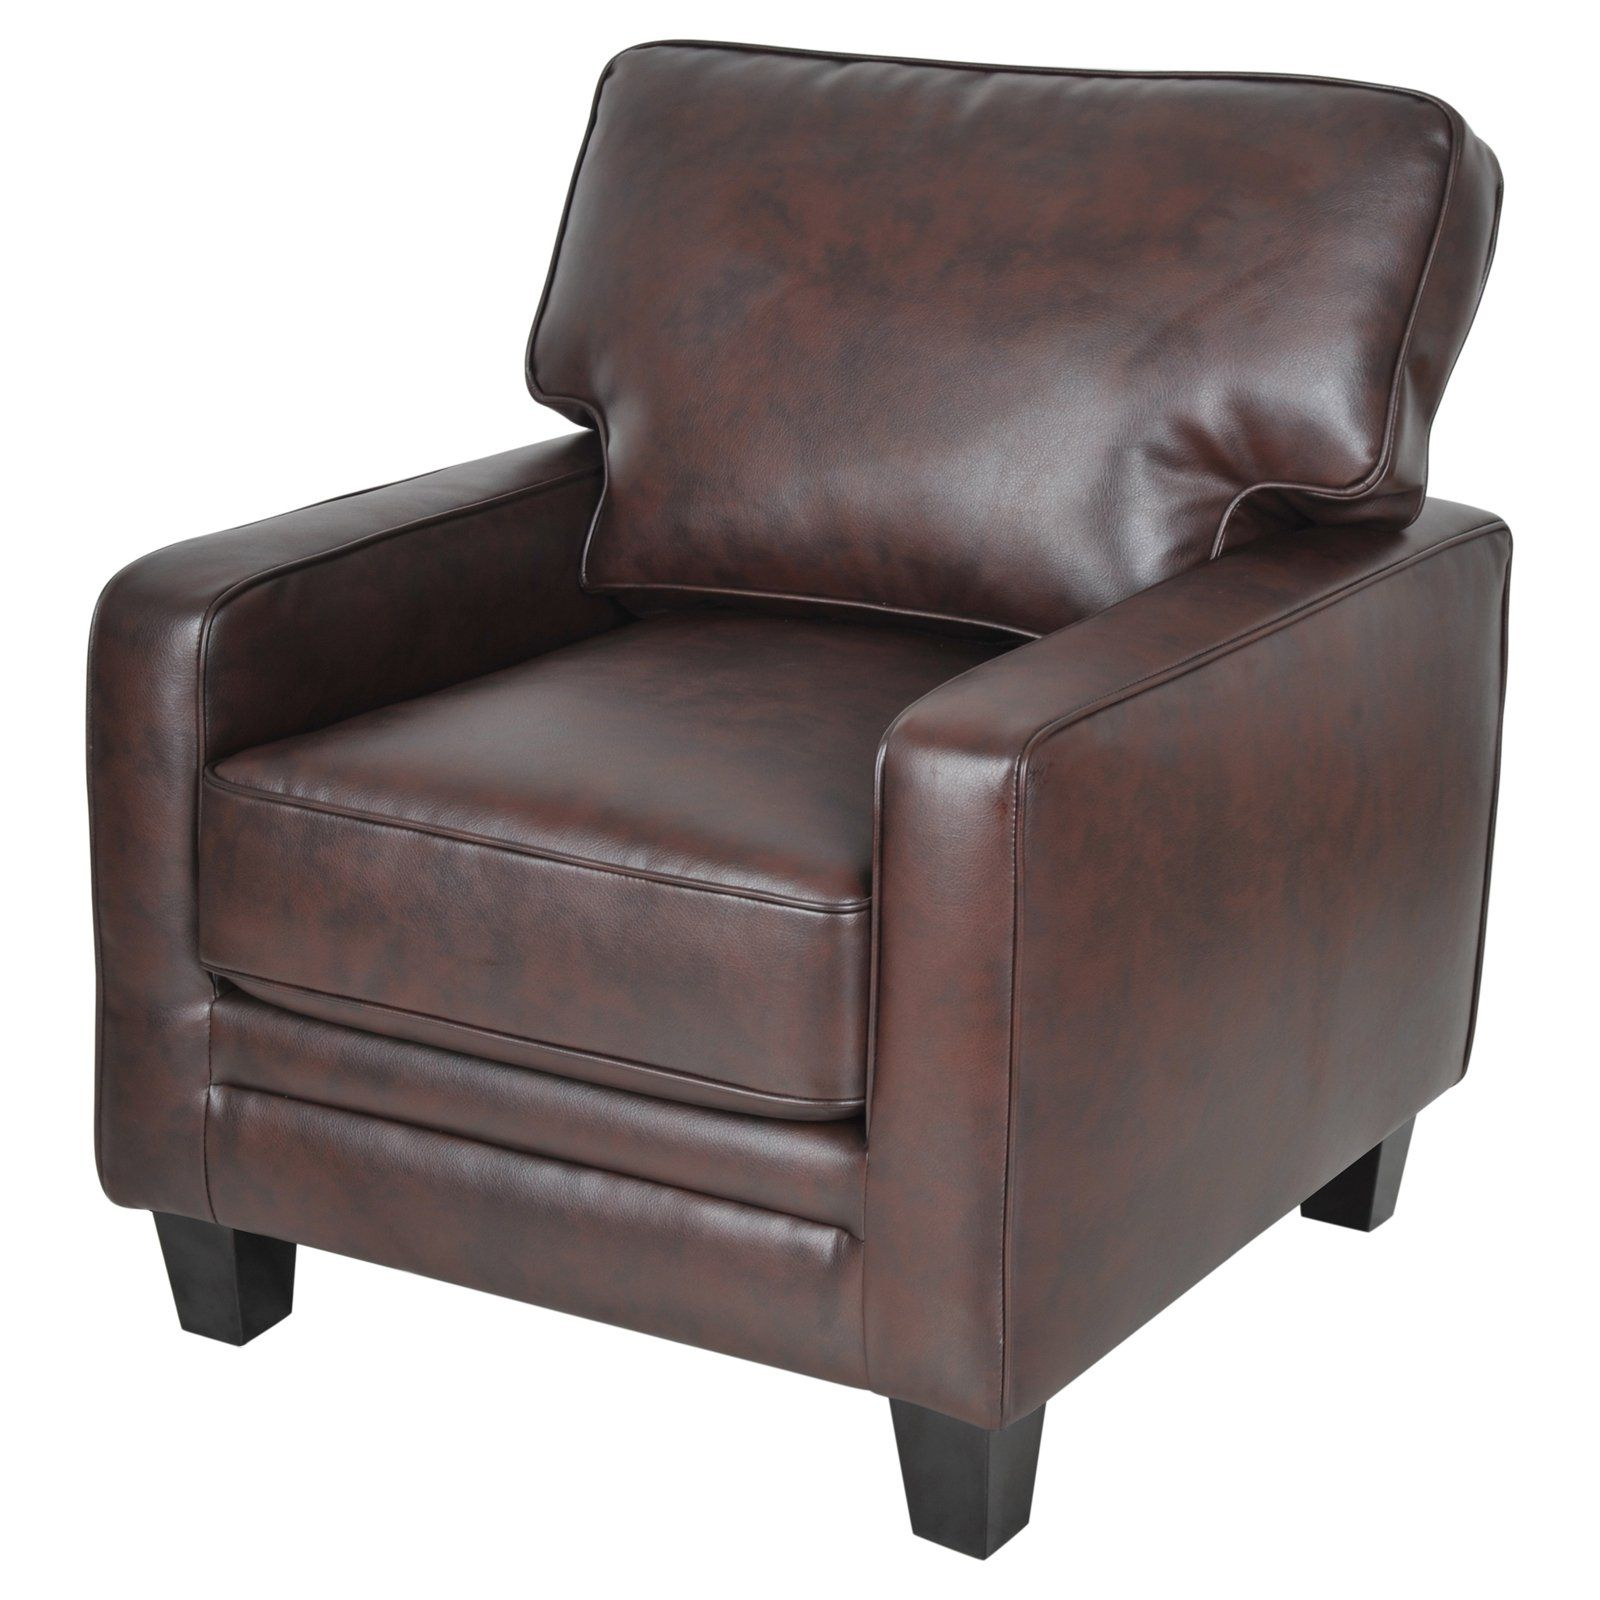 Leather accent chairs with arms - Serta Monaco Collection Eco Friendly Bonded Leather Track Arm Accent Chair Biscuit Brown